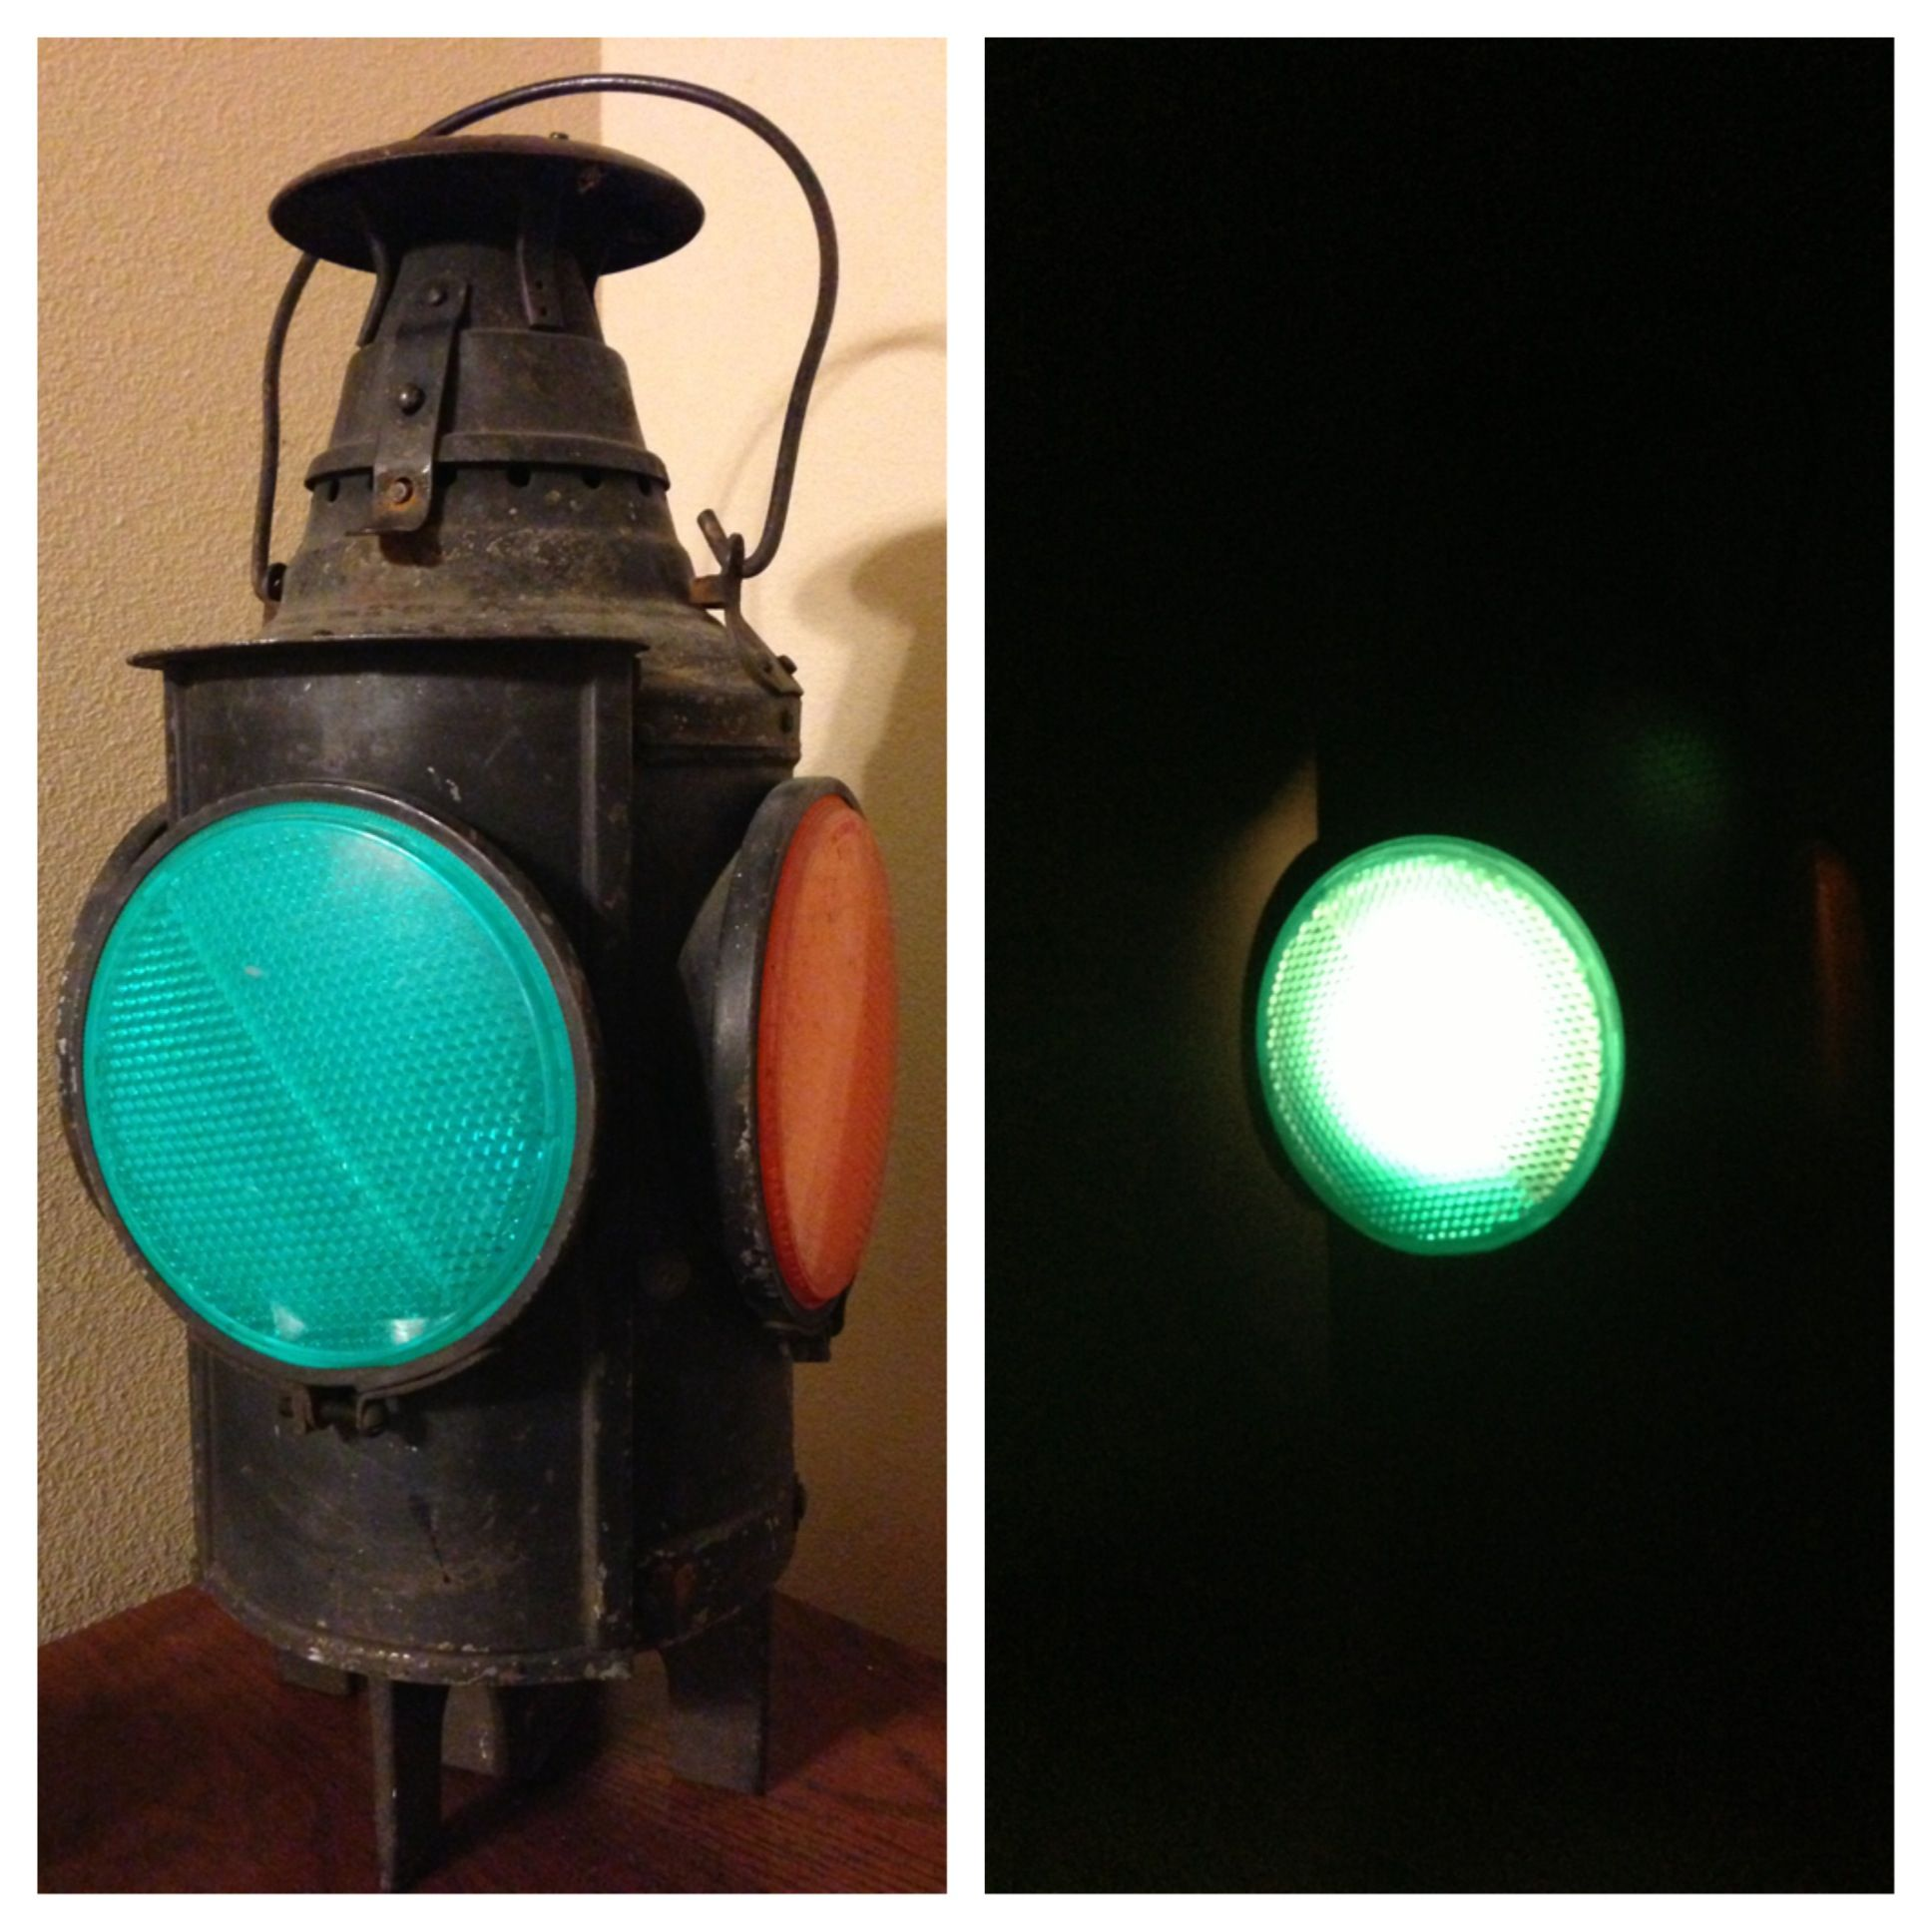 Vintage 1940s railroad lantern for my sons train themed room put vintage 1940s railroad lantern for my sons train themed room put a led light in arubaitofo Image collections